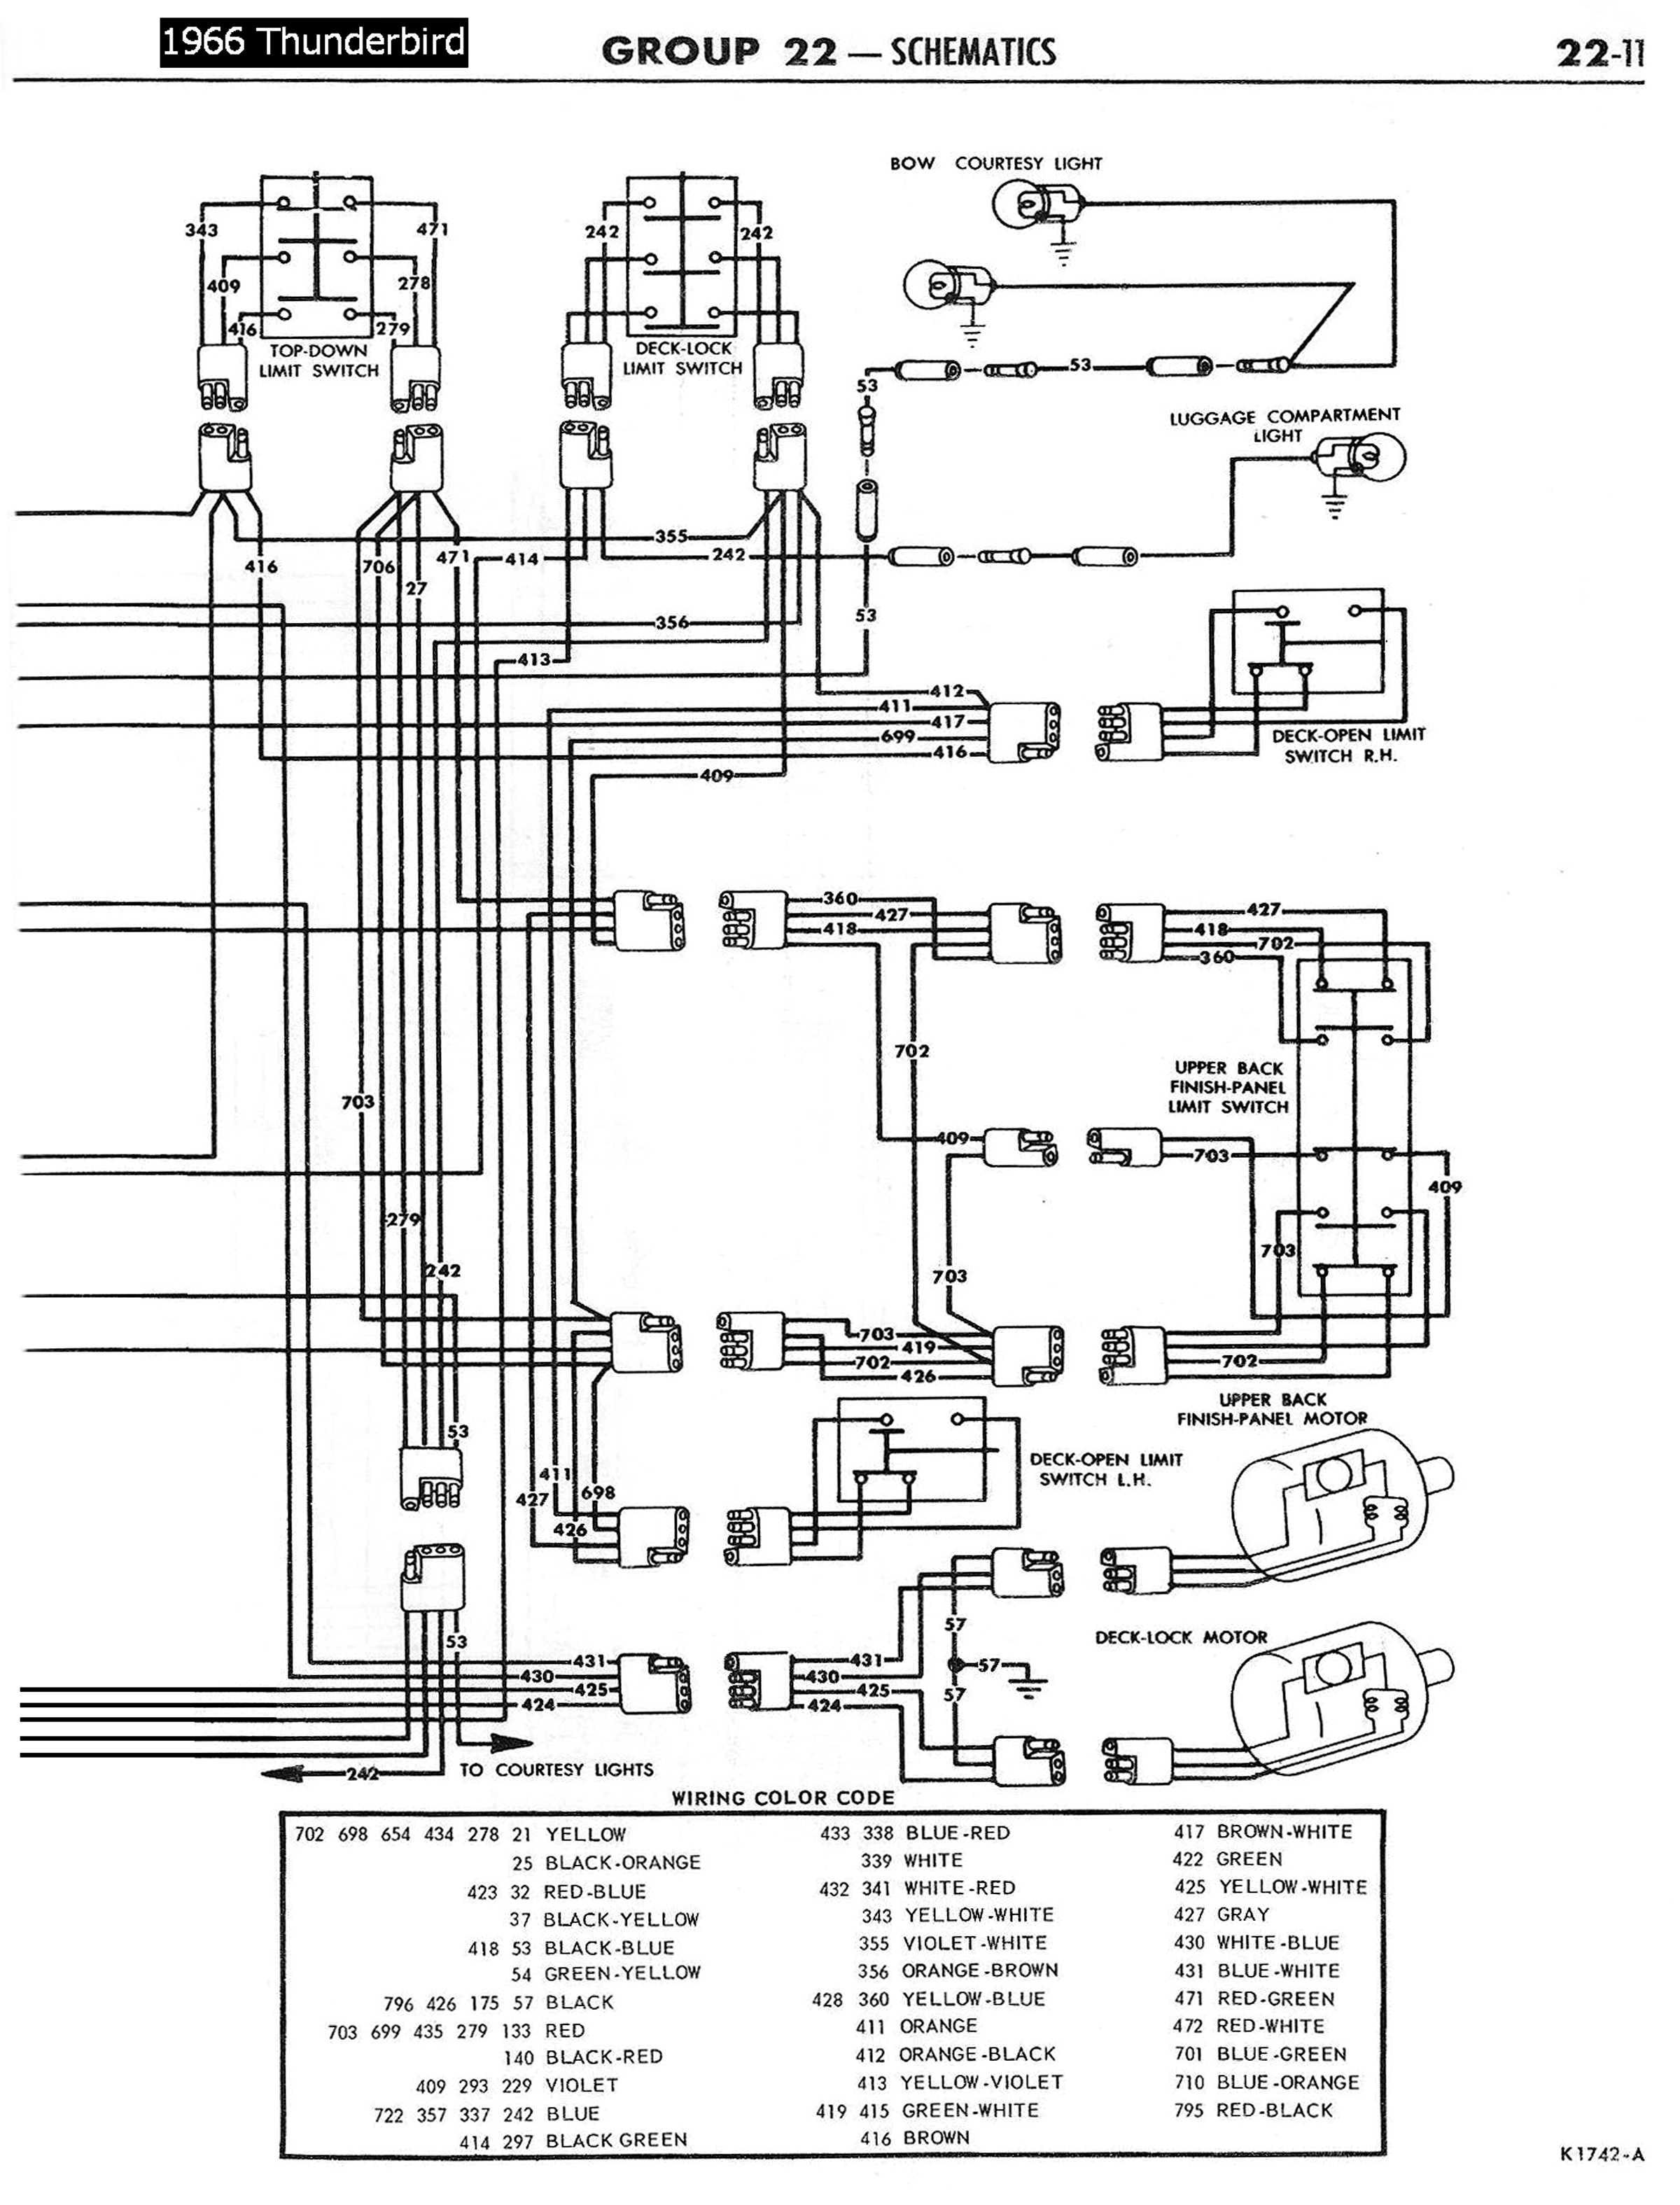 65 t bird wiring diagram 1958 68 ford electrical schematics  1958 68 ford electrical schematics